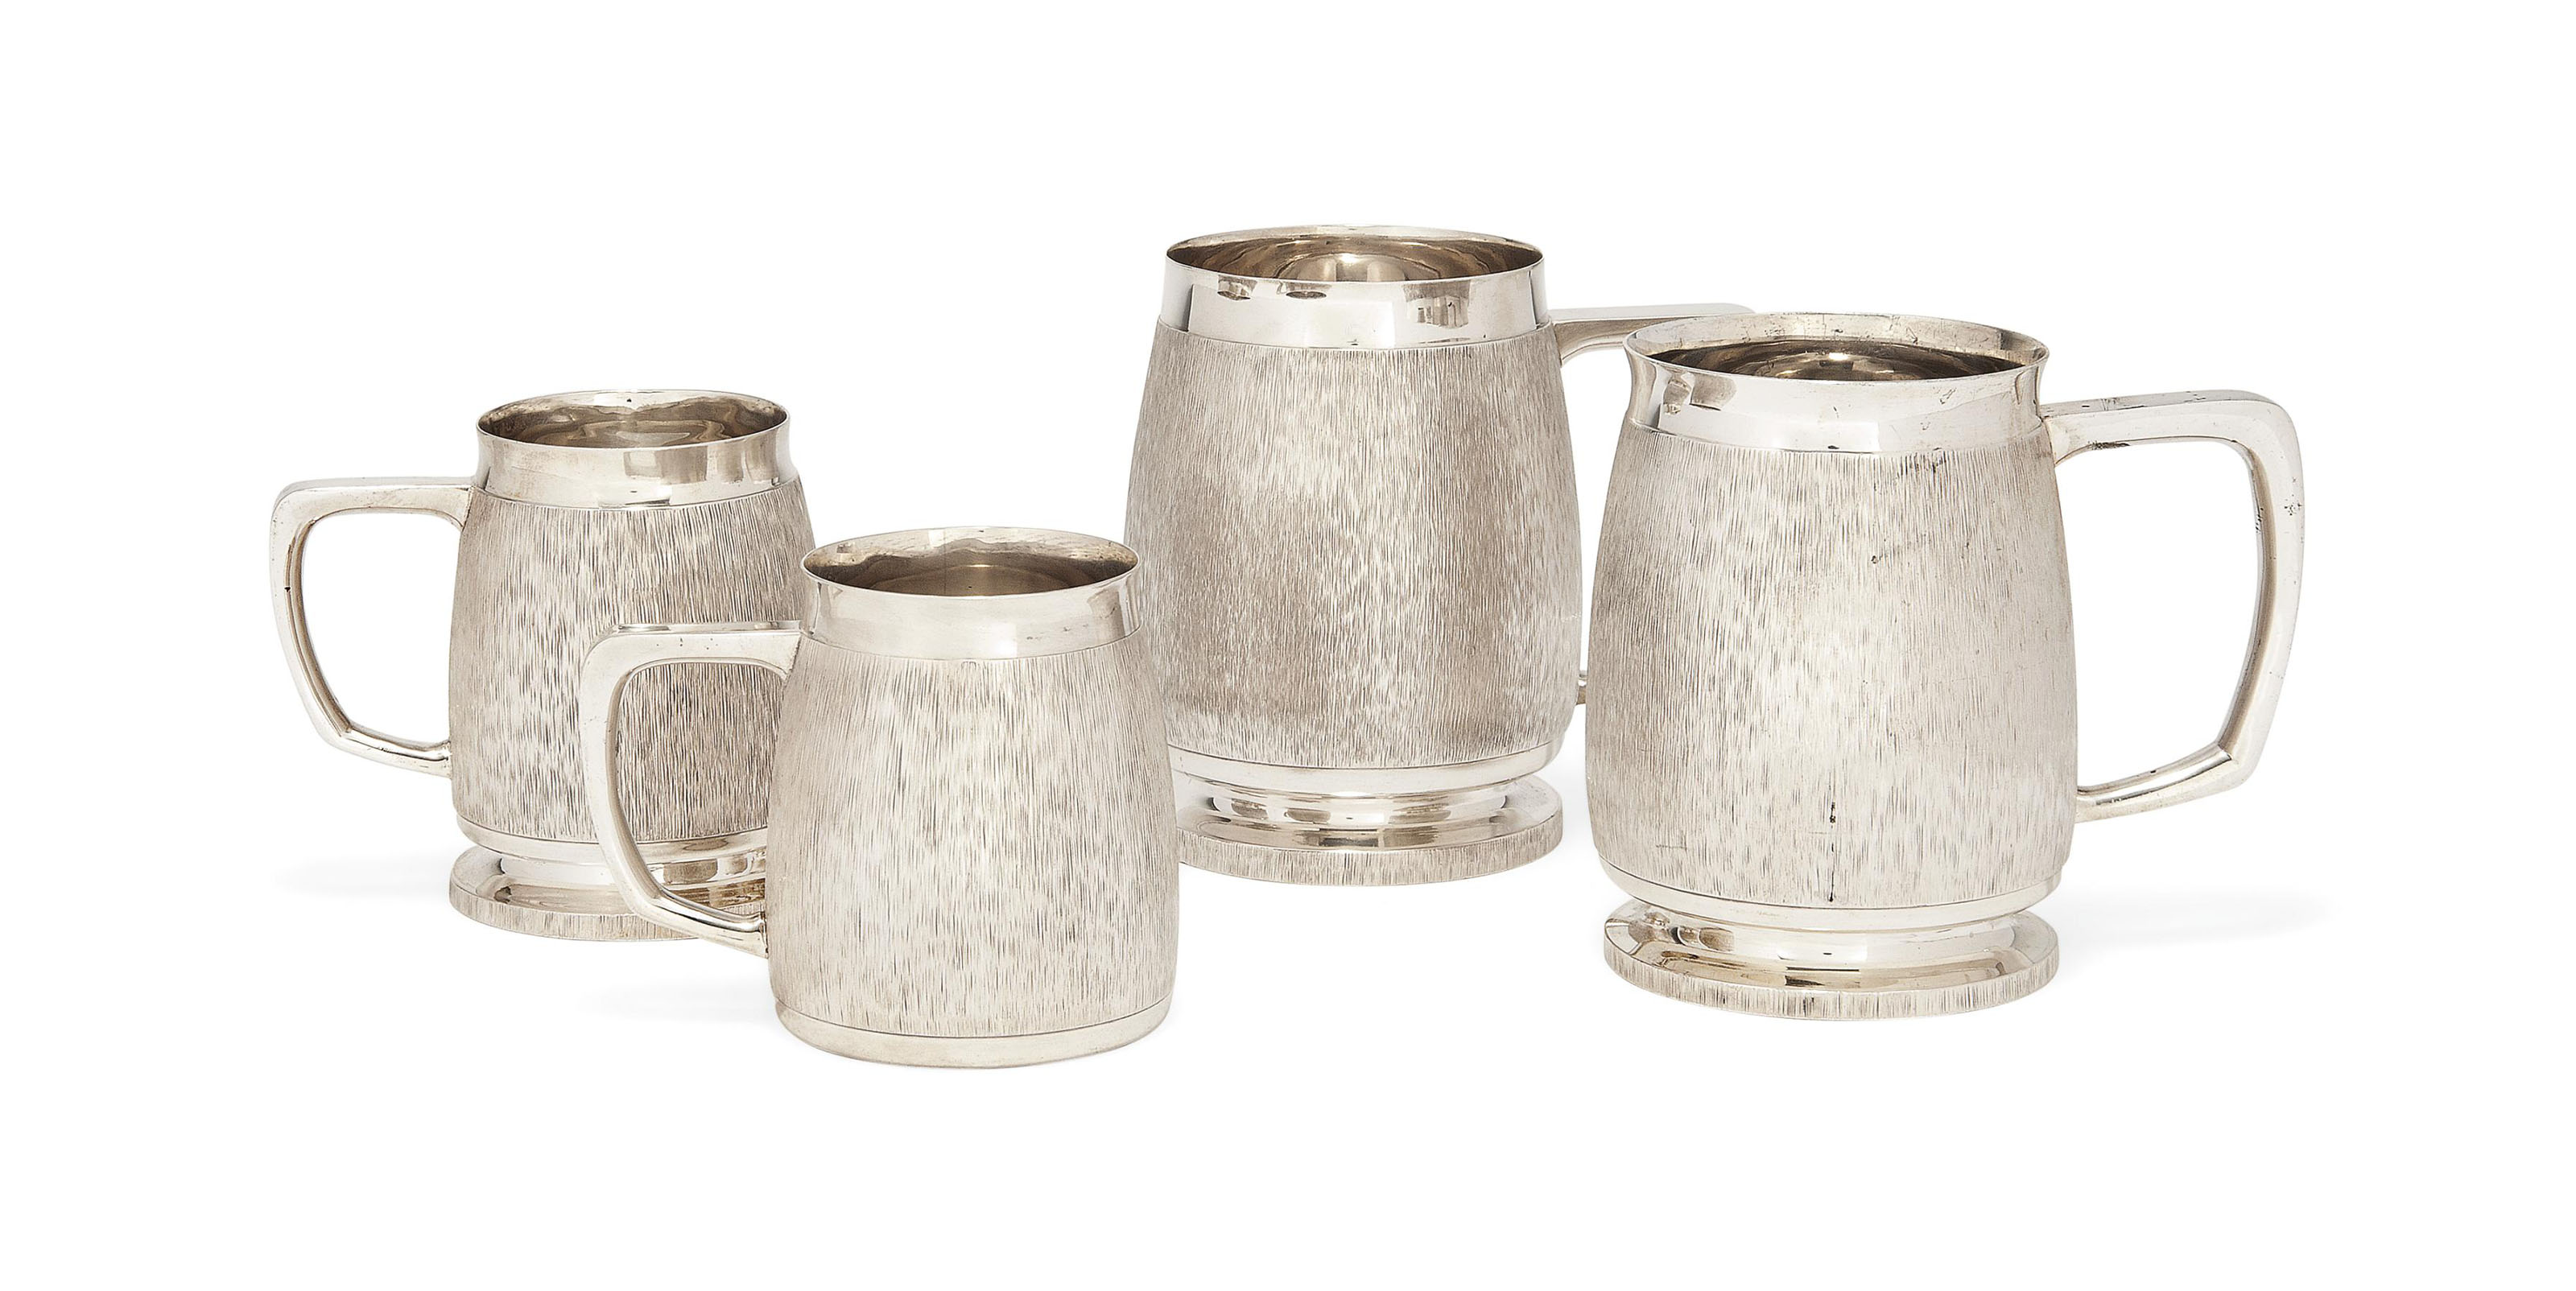 FOUR SILVER MUGS IN THREE SIZES, IN THE MANNER OF GERALD BENNEY